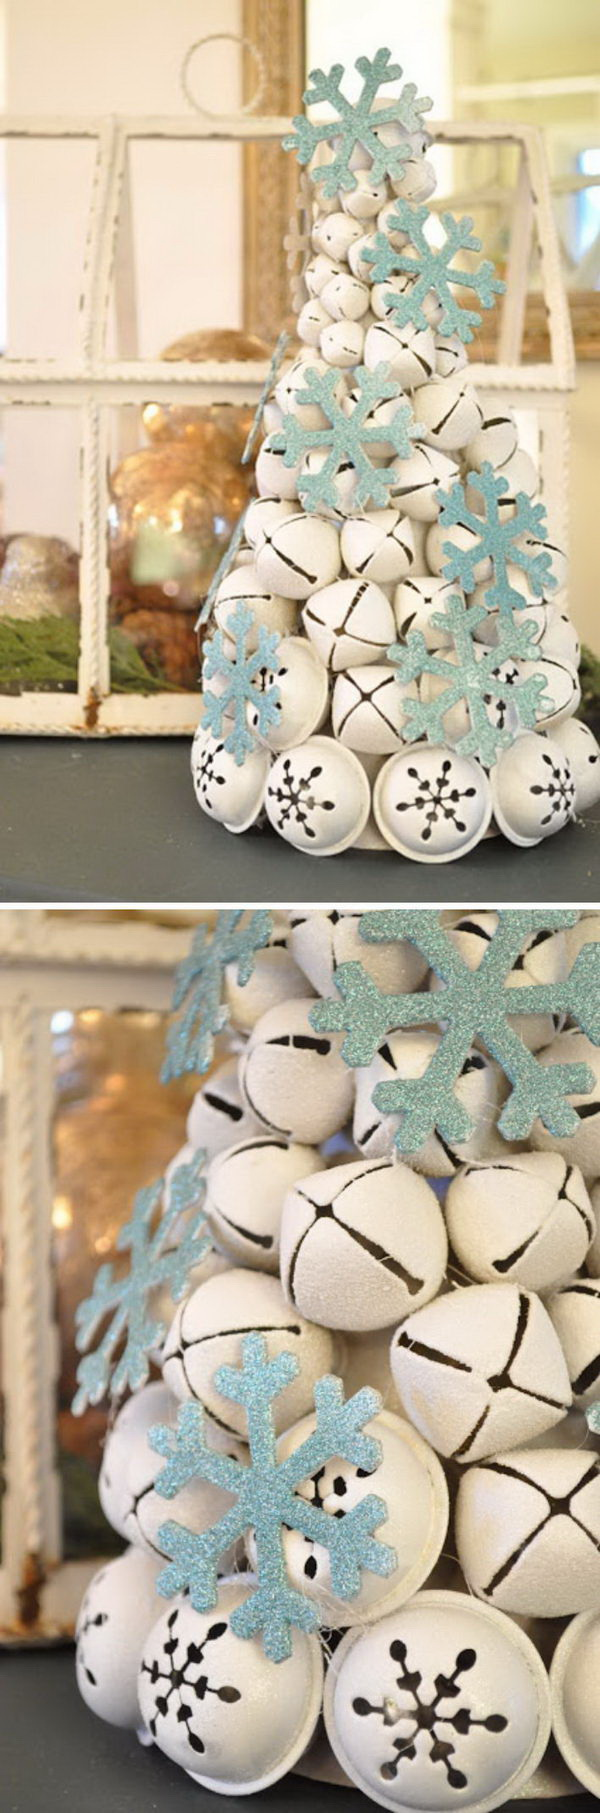 55+ Rustic Farmhouse Inspired DIY Christmas Decoration ...